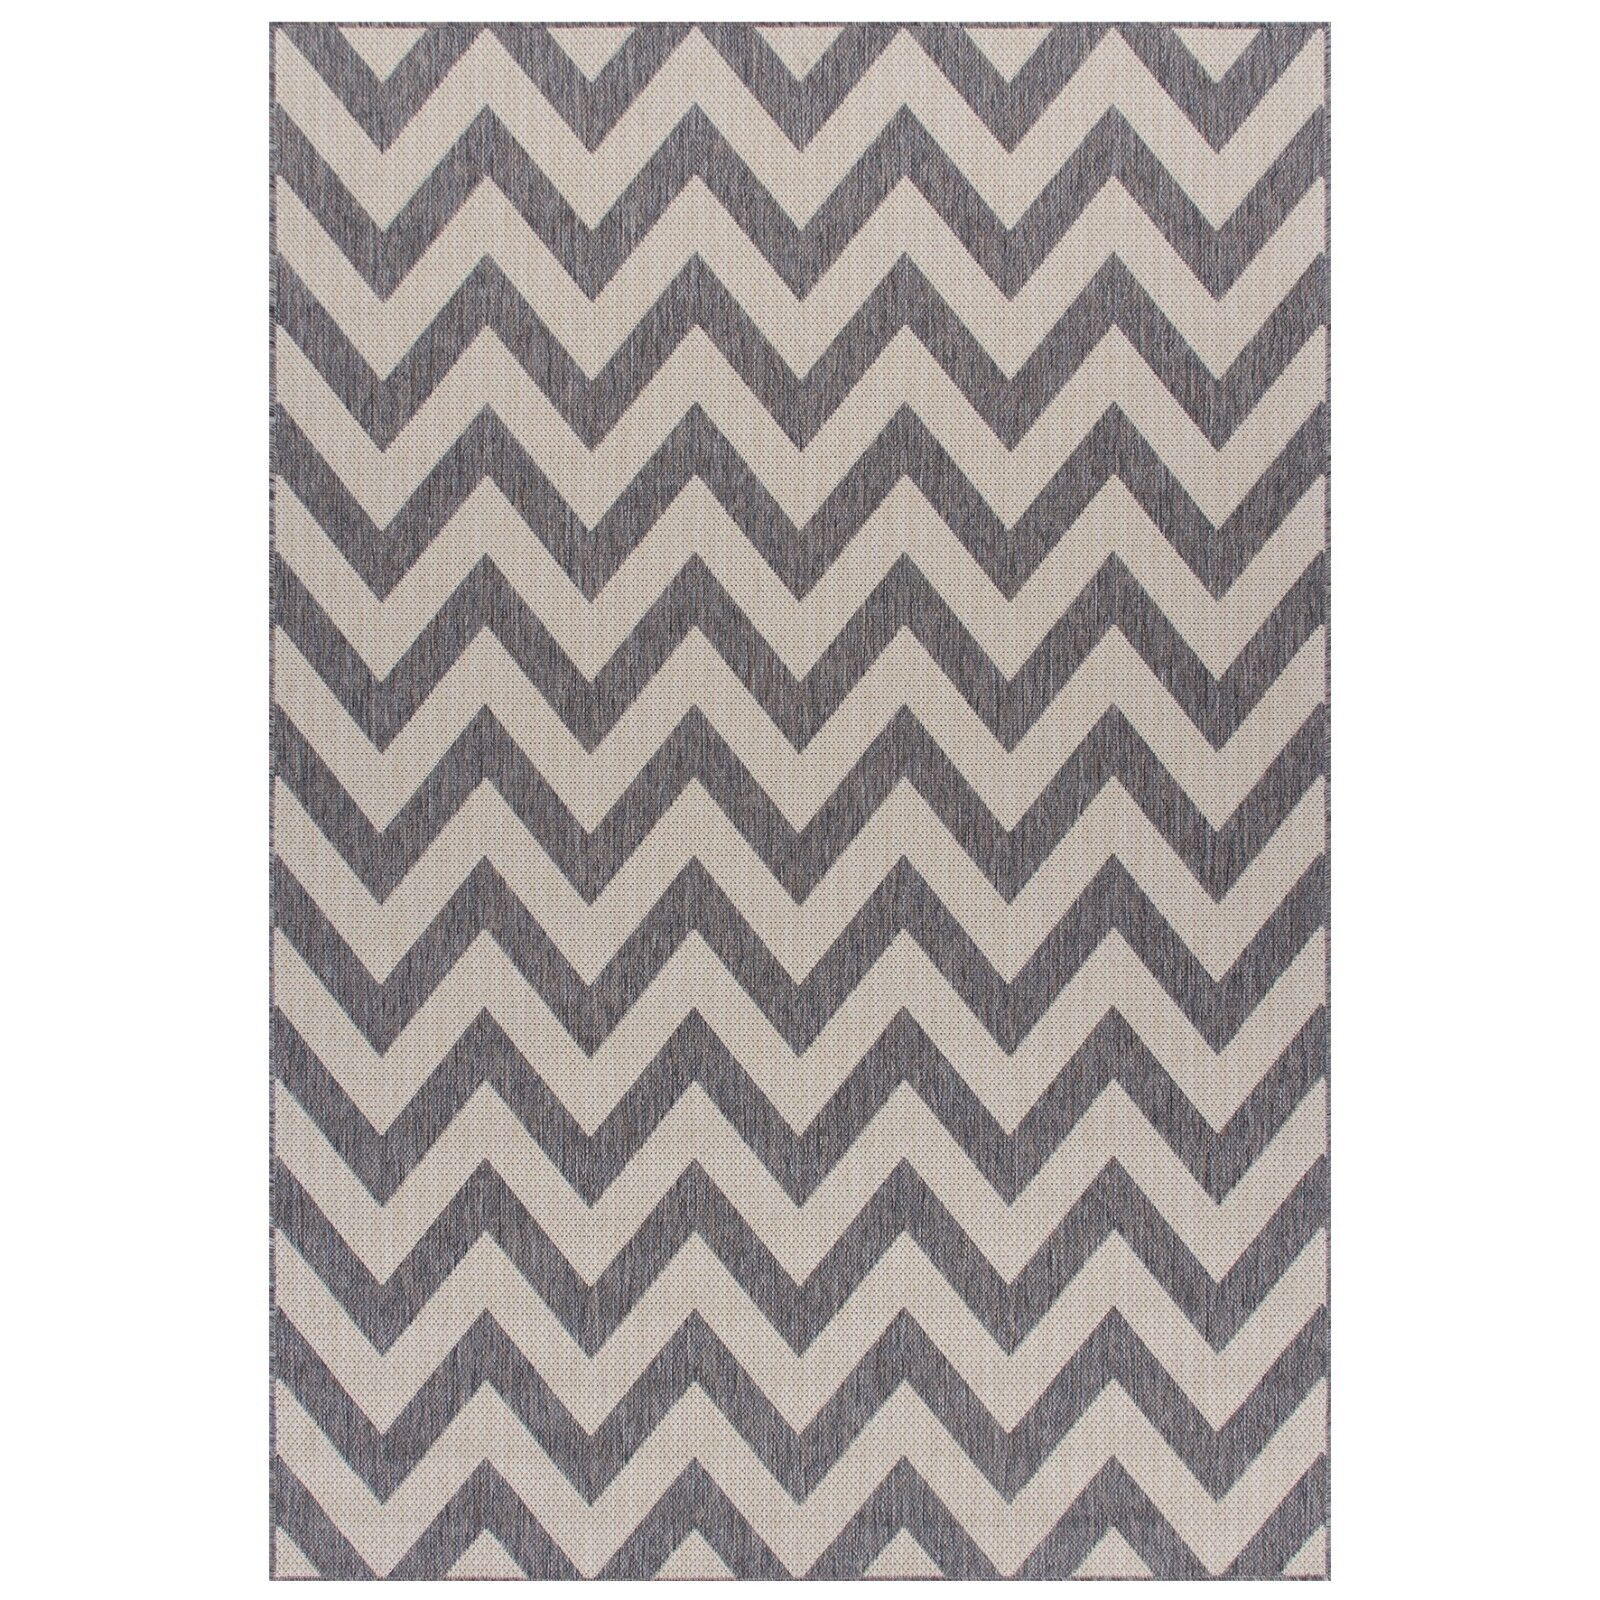 Modern Chevron Kitchen Utility Runner Tapis Beige Gris Sisal Like Slip Anti Slip Like S-XL 07f125